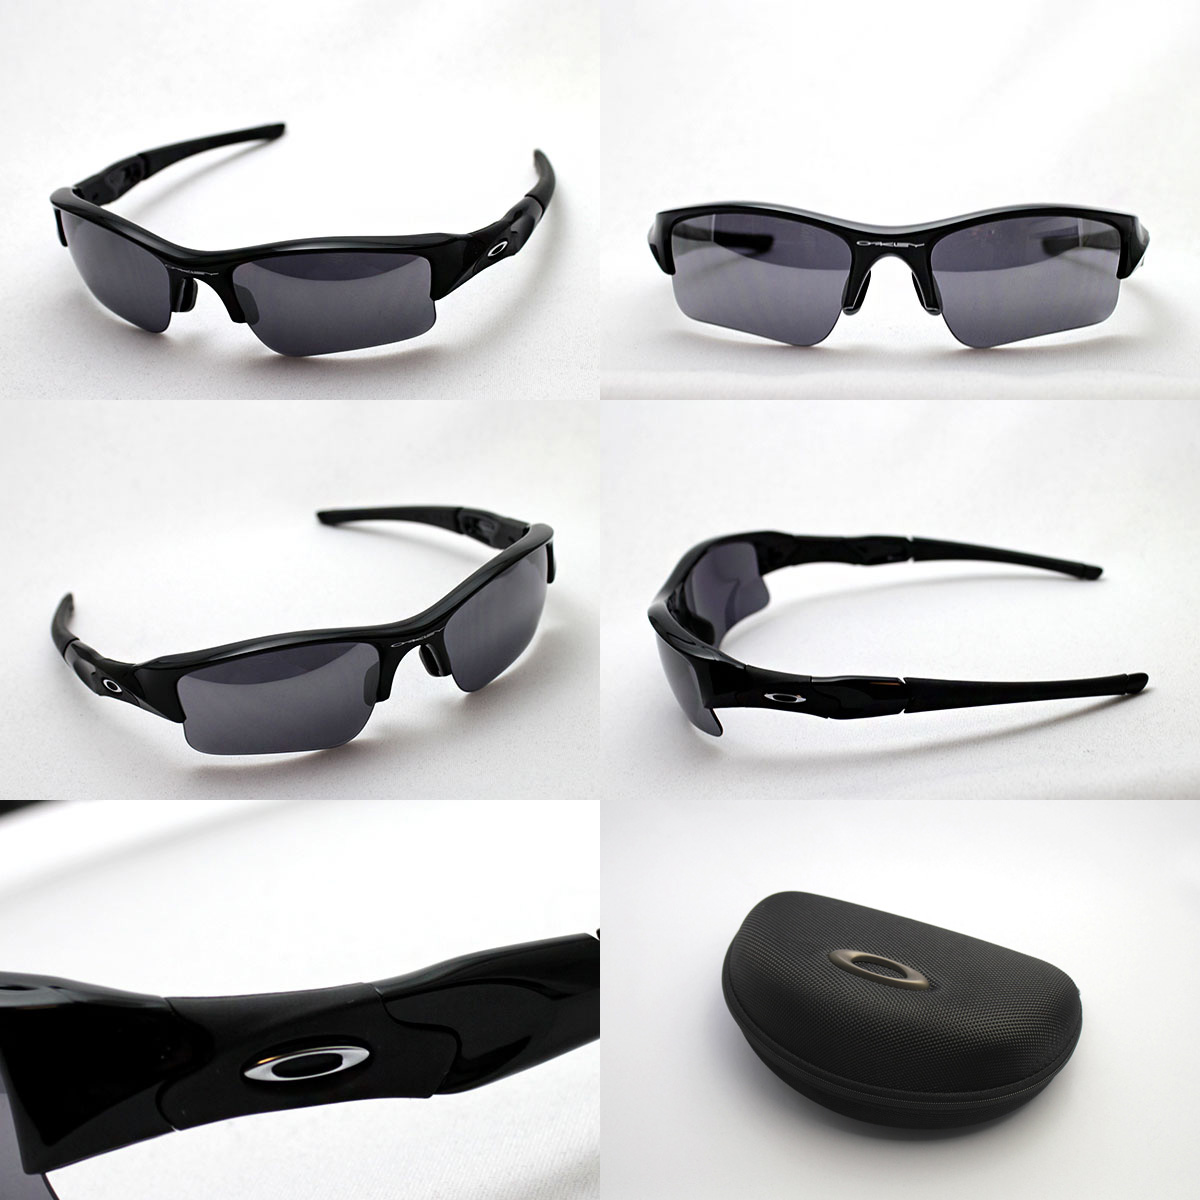 Oakley sunglasses asian fit - 03 915 J Oakley Sunglasses Flak Jacket Xlj Asian Fit Oakley Flak Jacket Xlj Asian